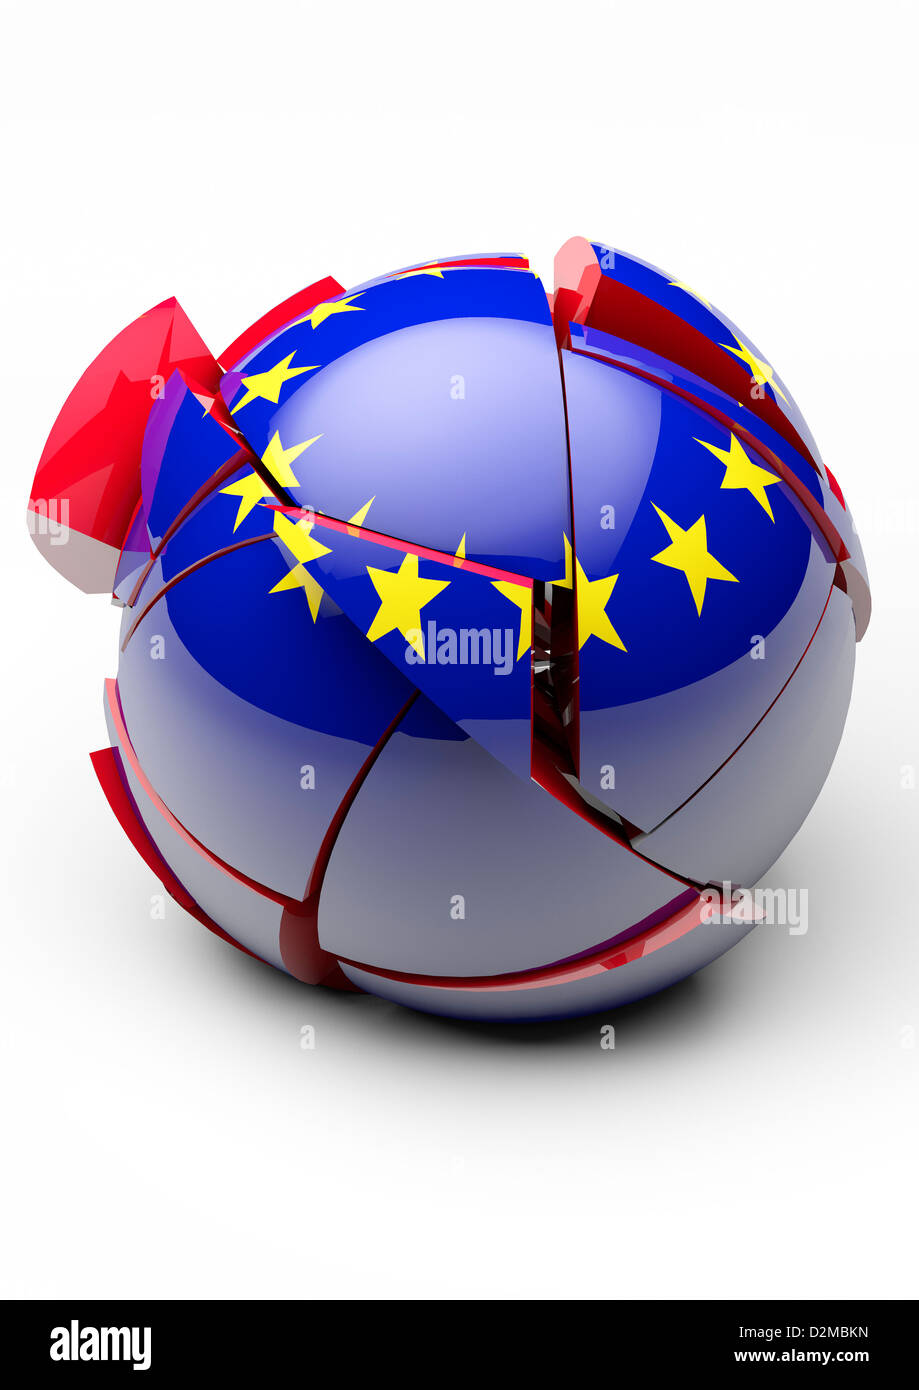 EU Eurozone crisis break up / referendum Brexit political Europe, European Union  concept - Stock Image